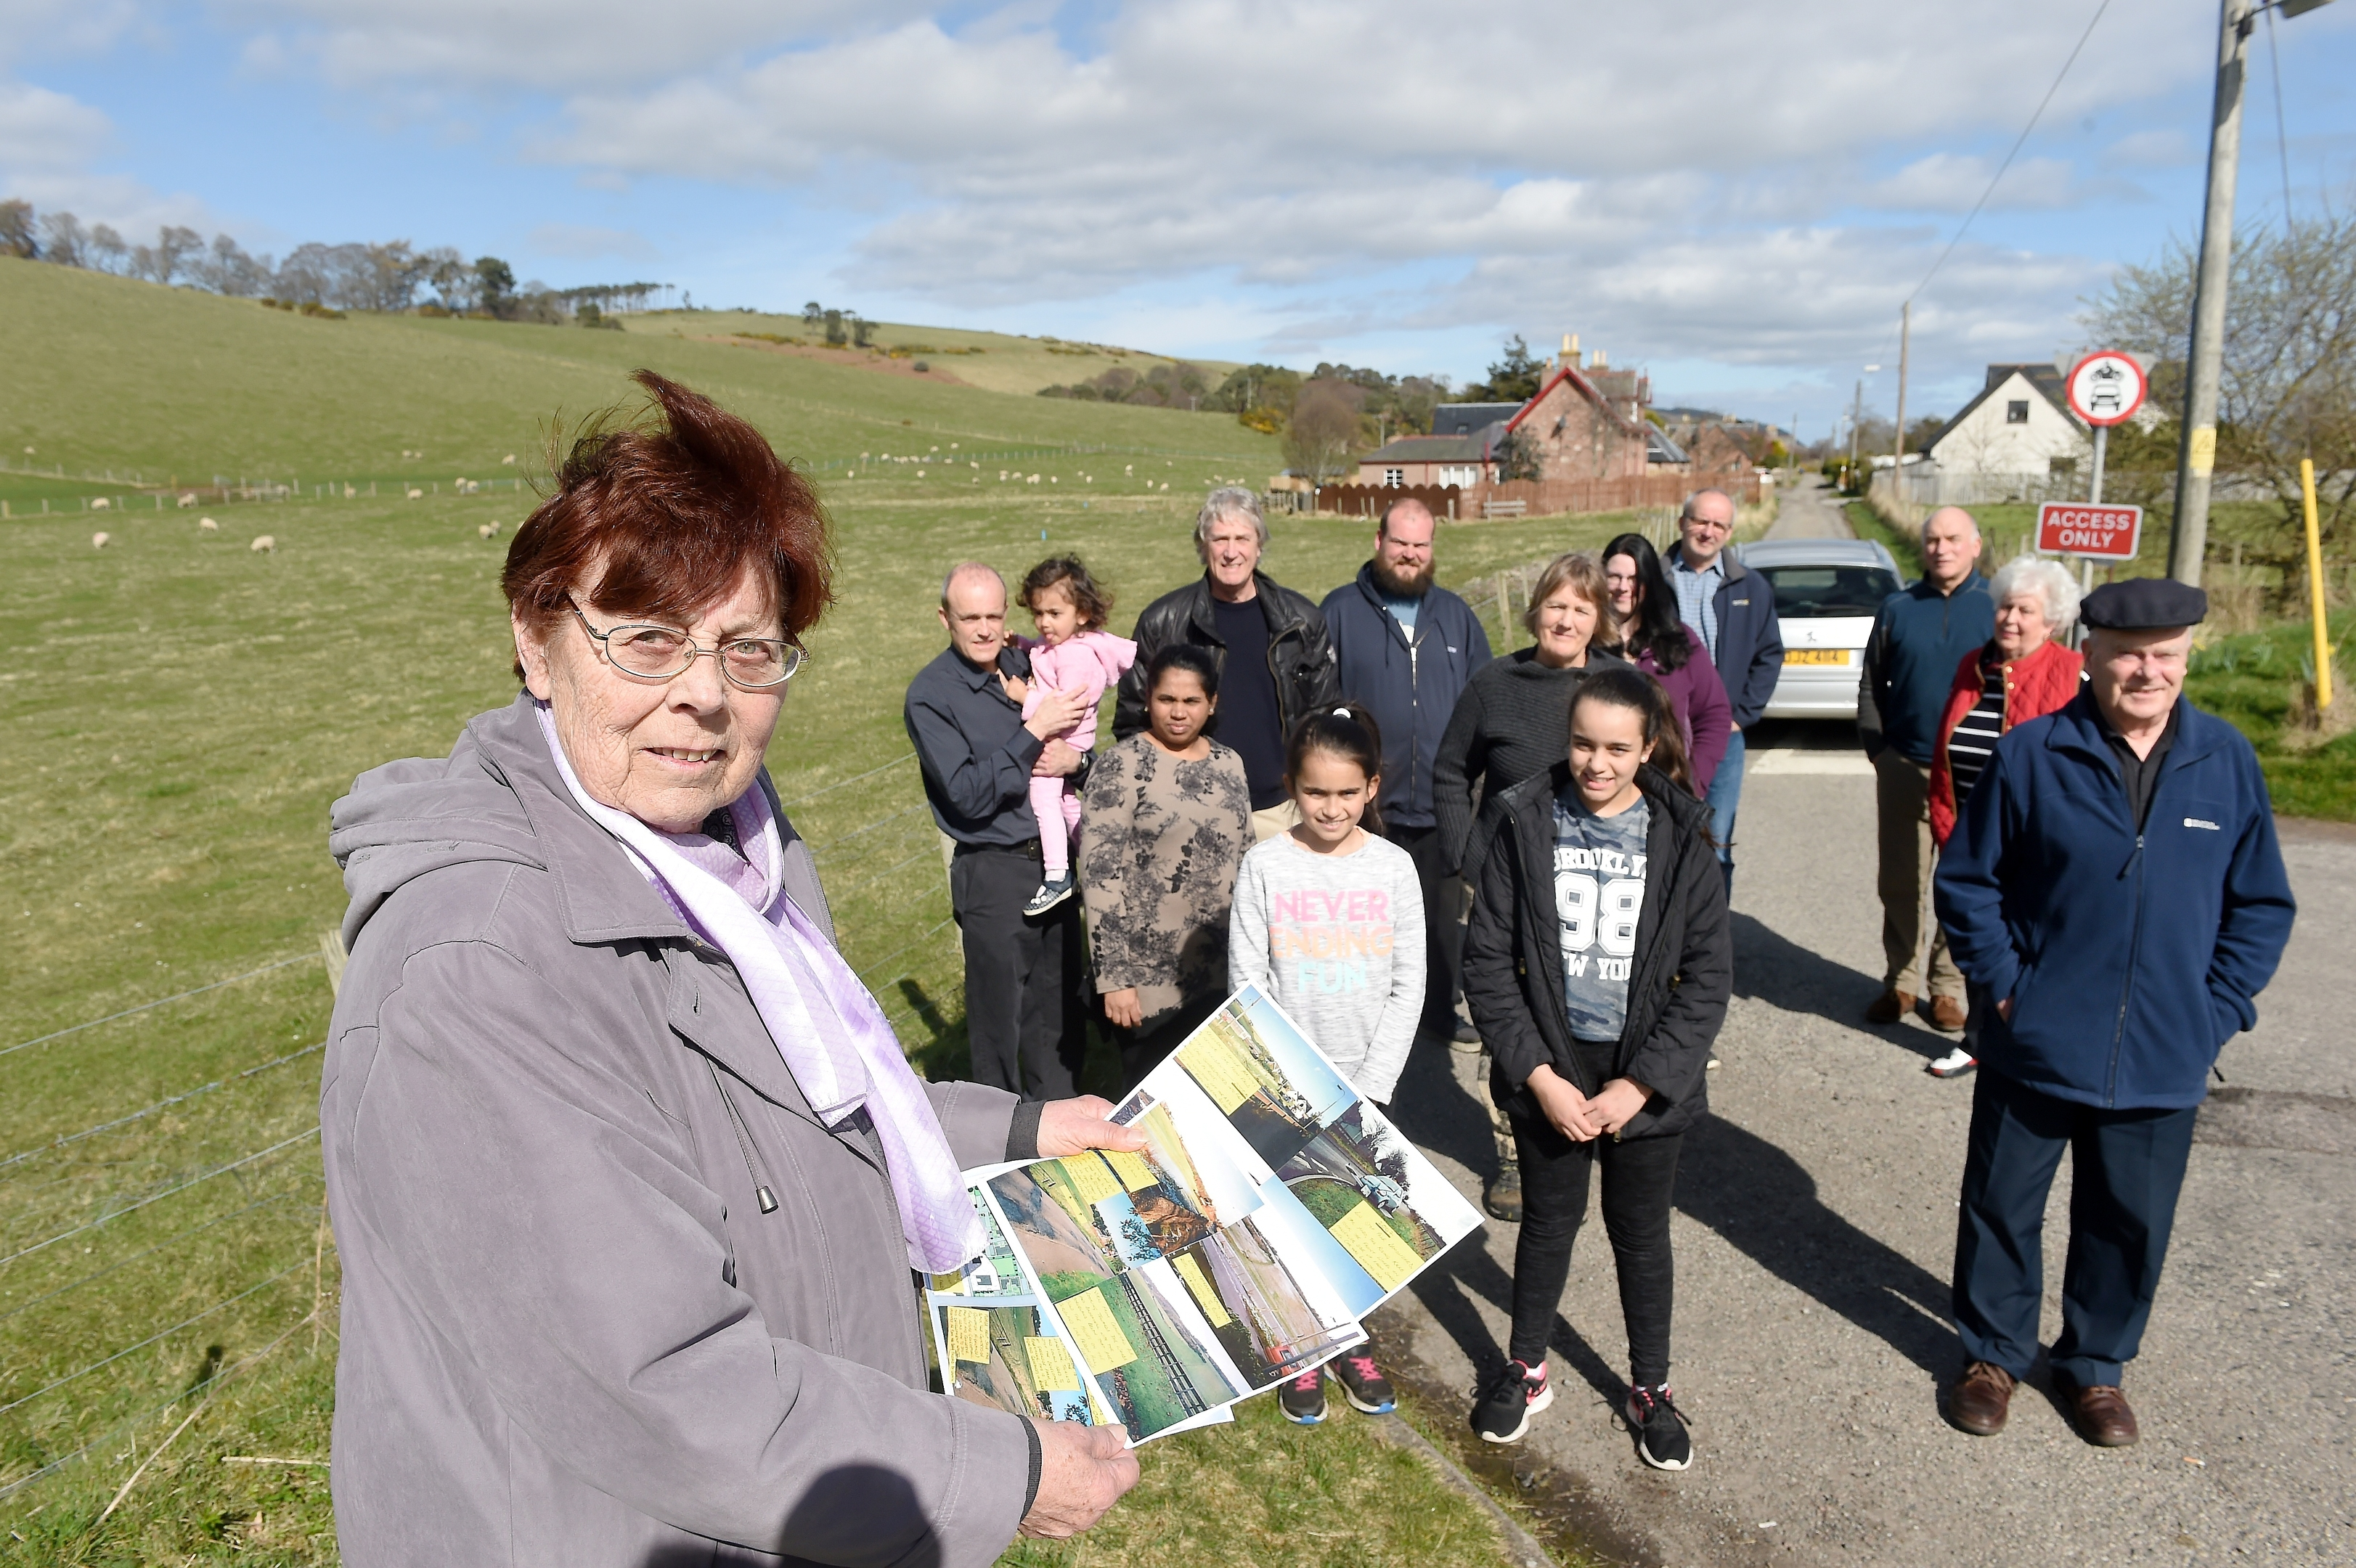 Diane Kinnear (foreground) of Rosemarkie with some of the other objectors to the proposed housing development off Courthill Road